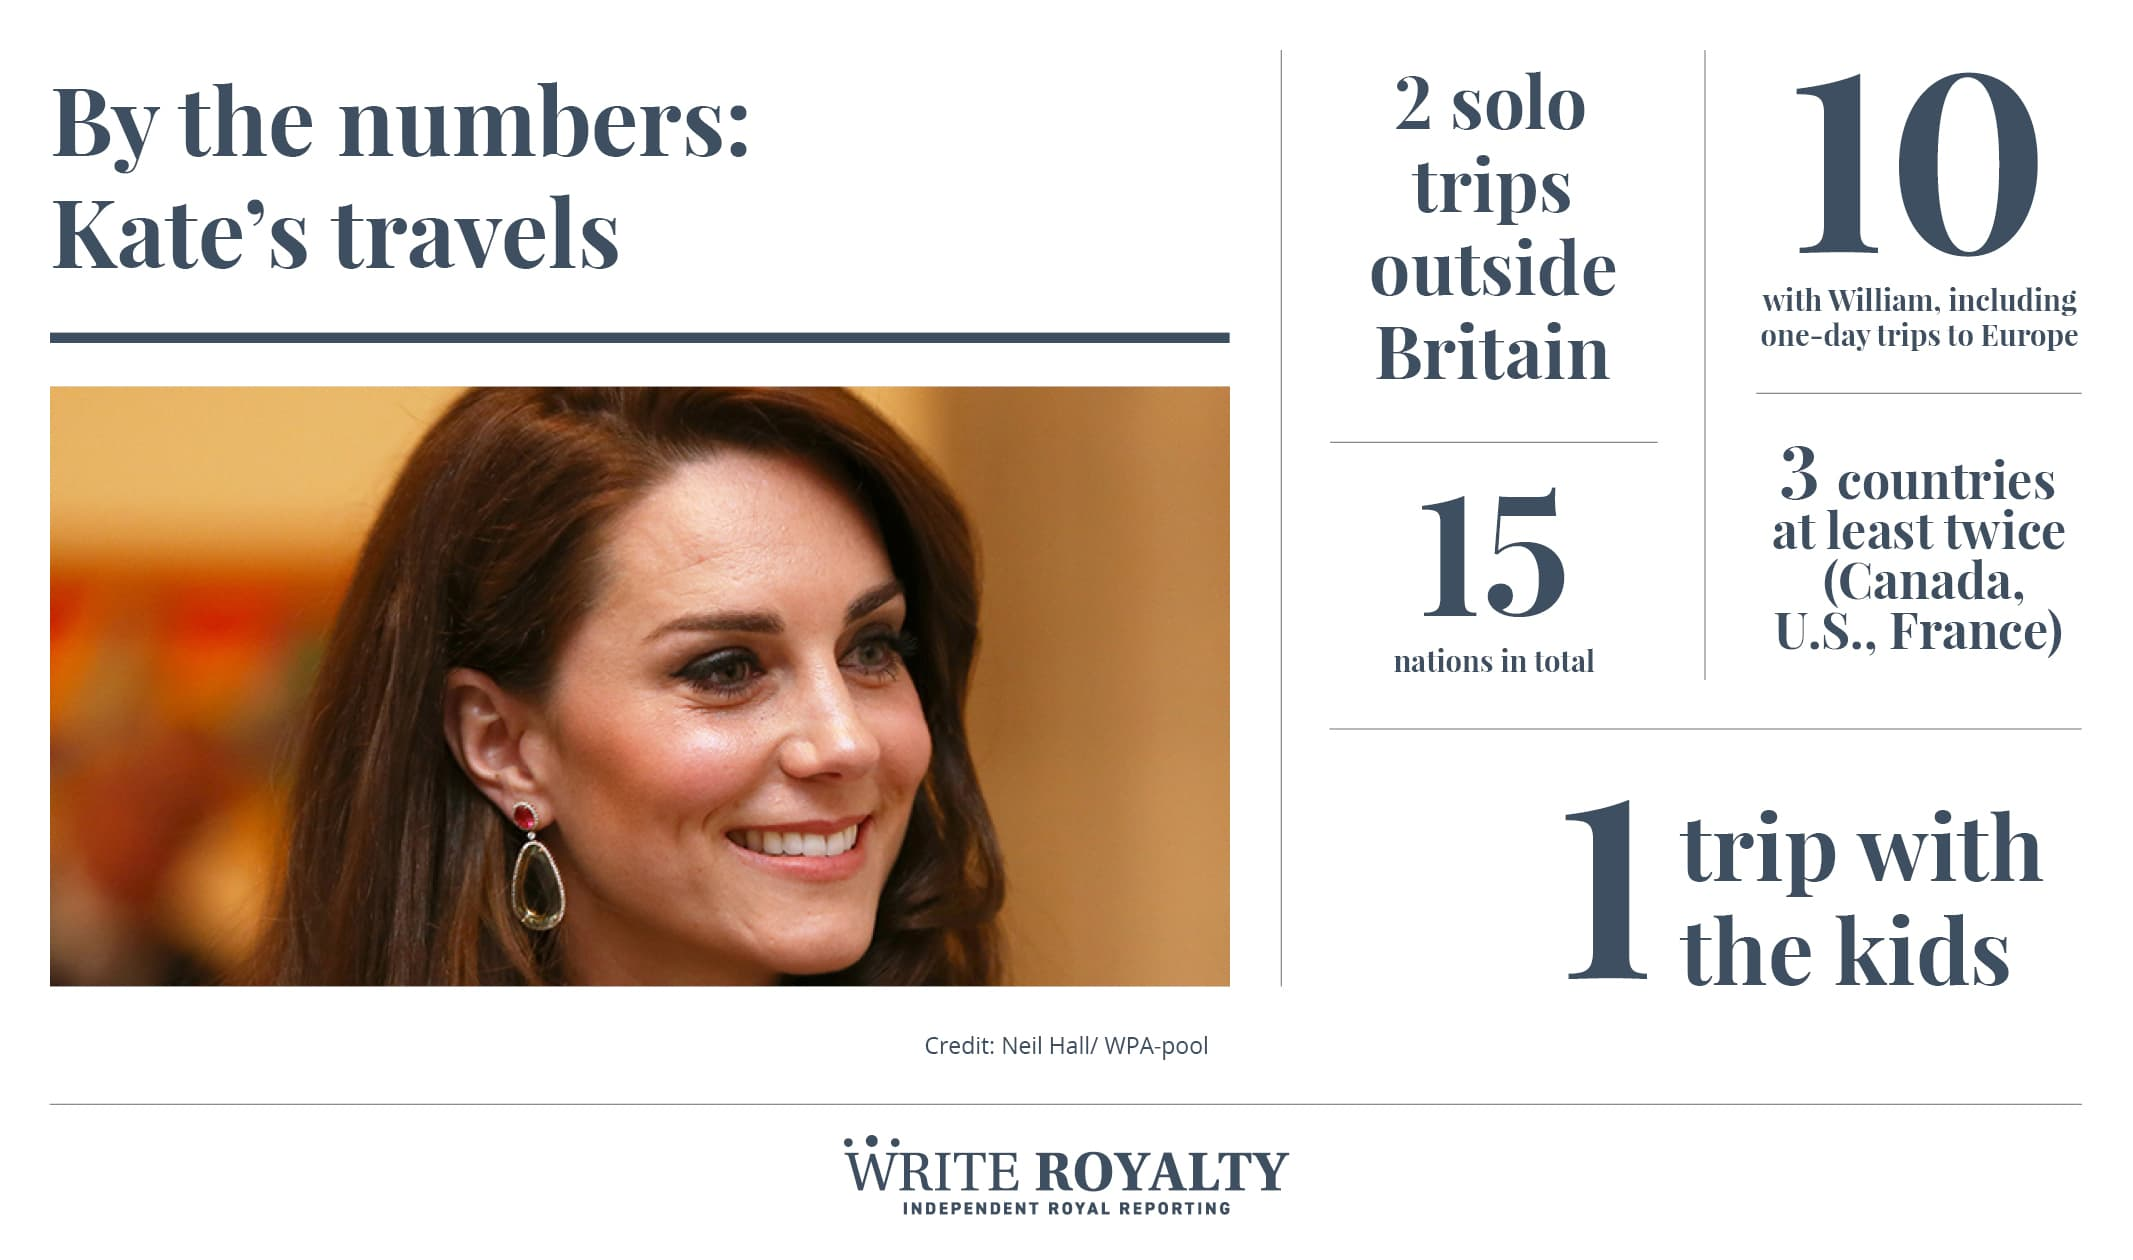 Kate Middleton Duchess of Cambridge royal tour travel statistics by the numbers